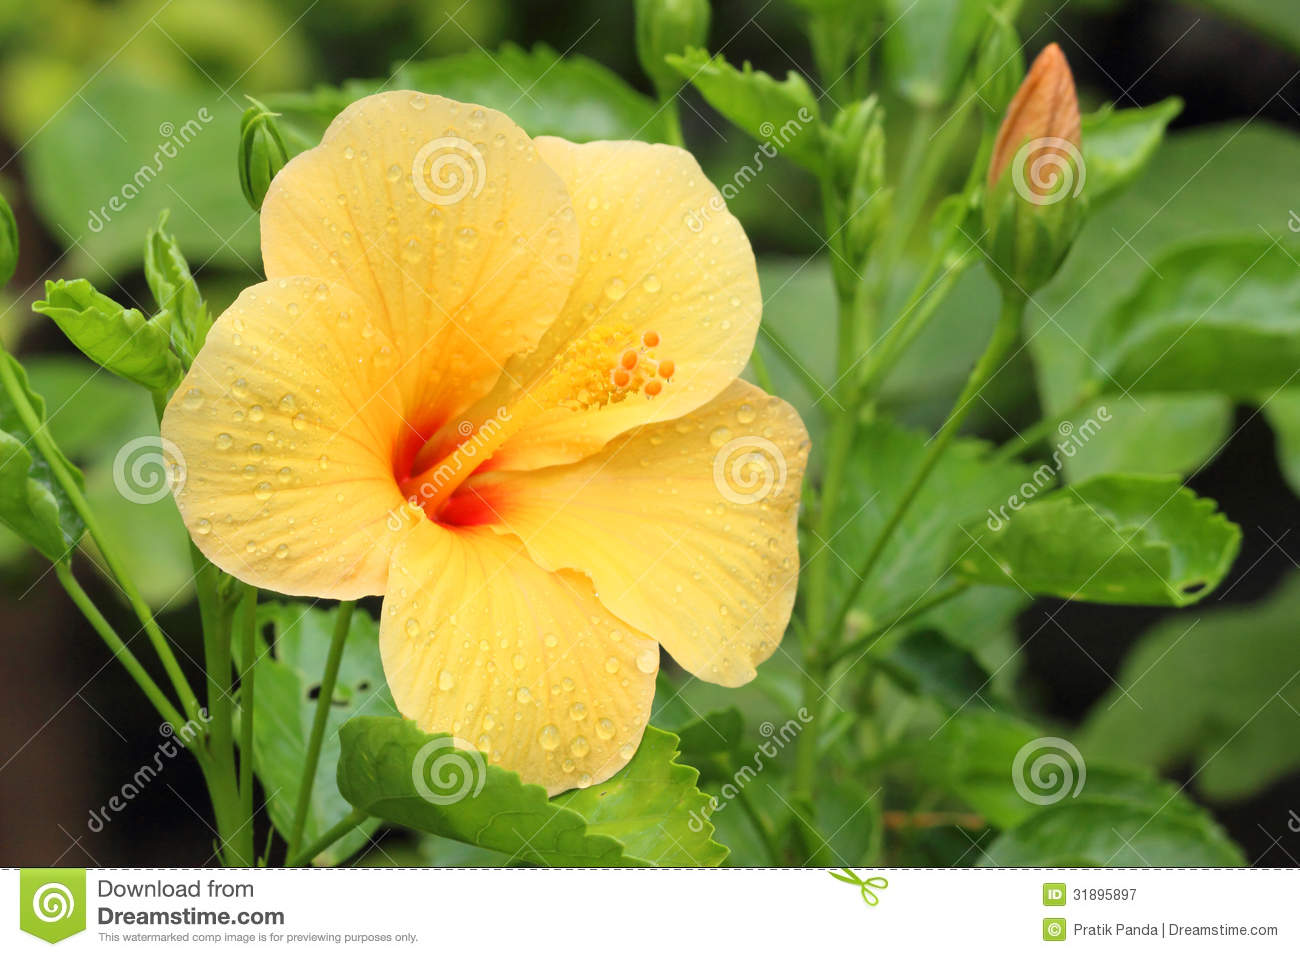 Exotic yellow hibiscus flower and plant stock image image of exotic yellow hibiscus flower and plant mightylinksfo